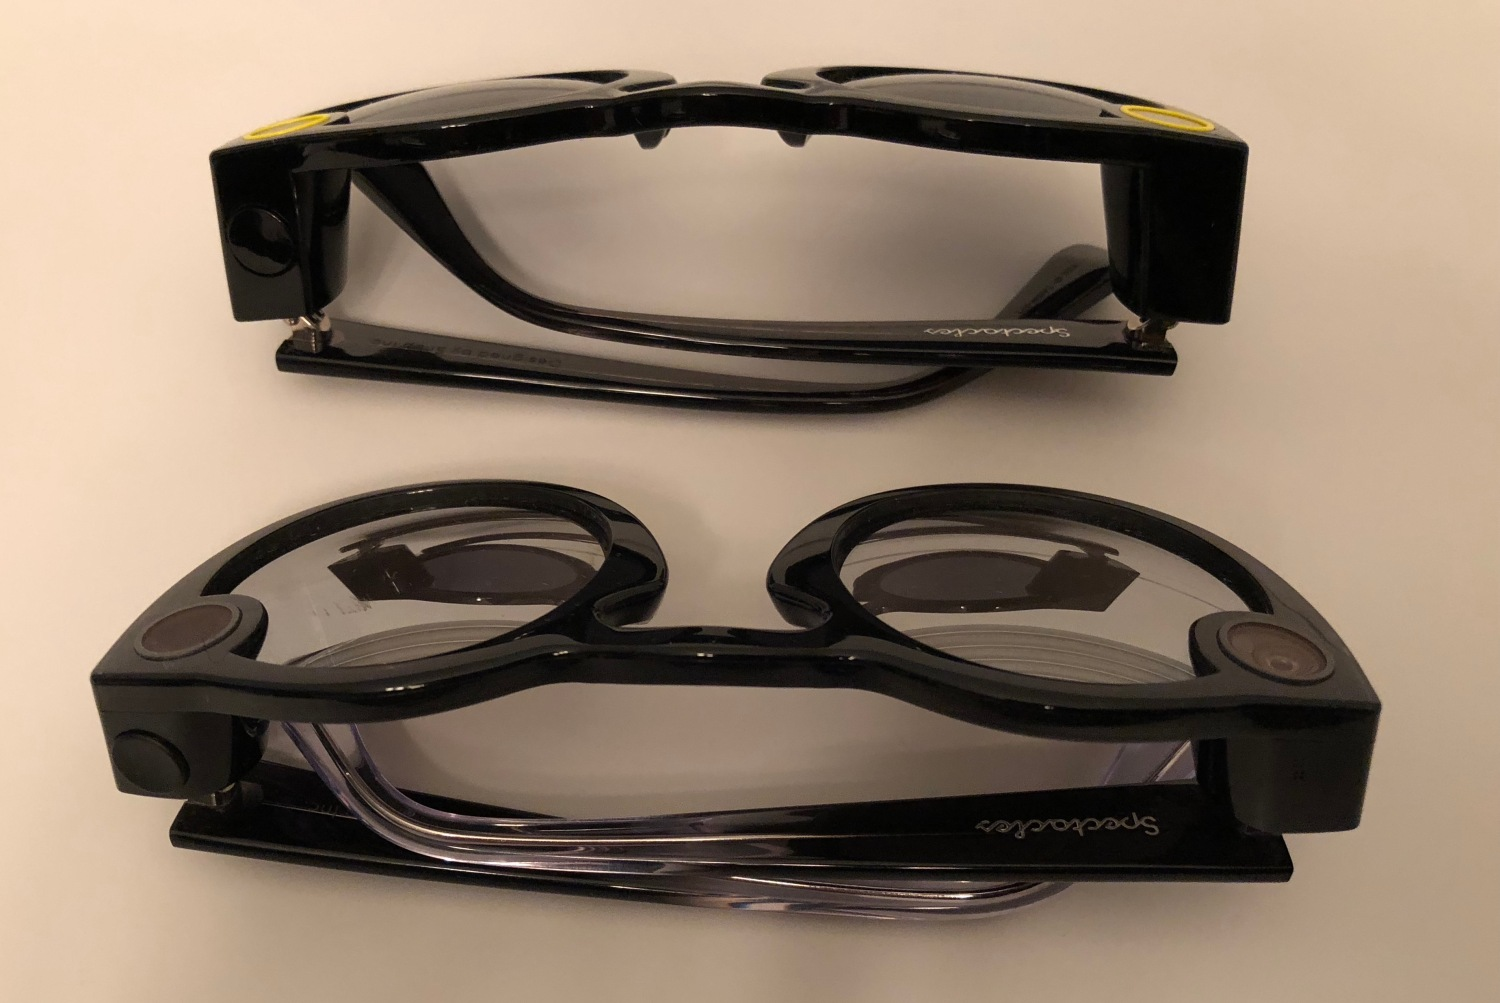 2d78e6f705c6 Snapchat Spectacles hardware v1 vs v2